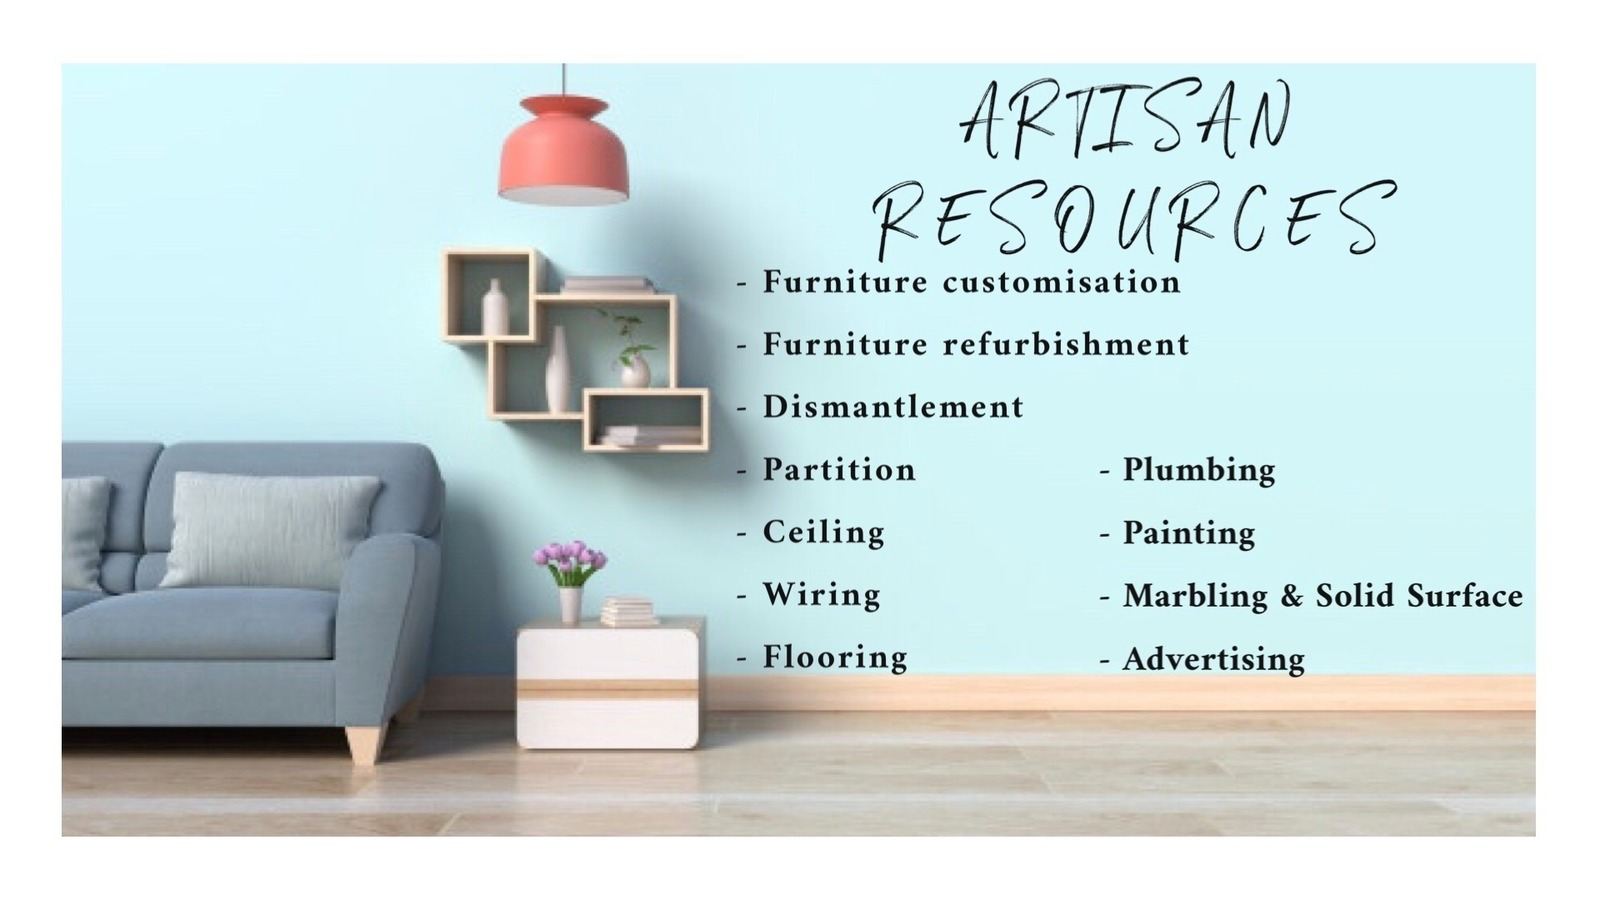 Artisan Resources